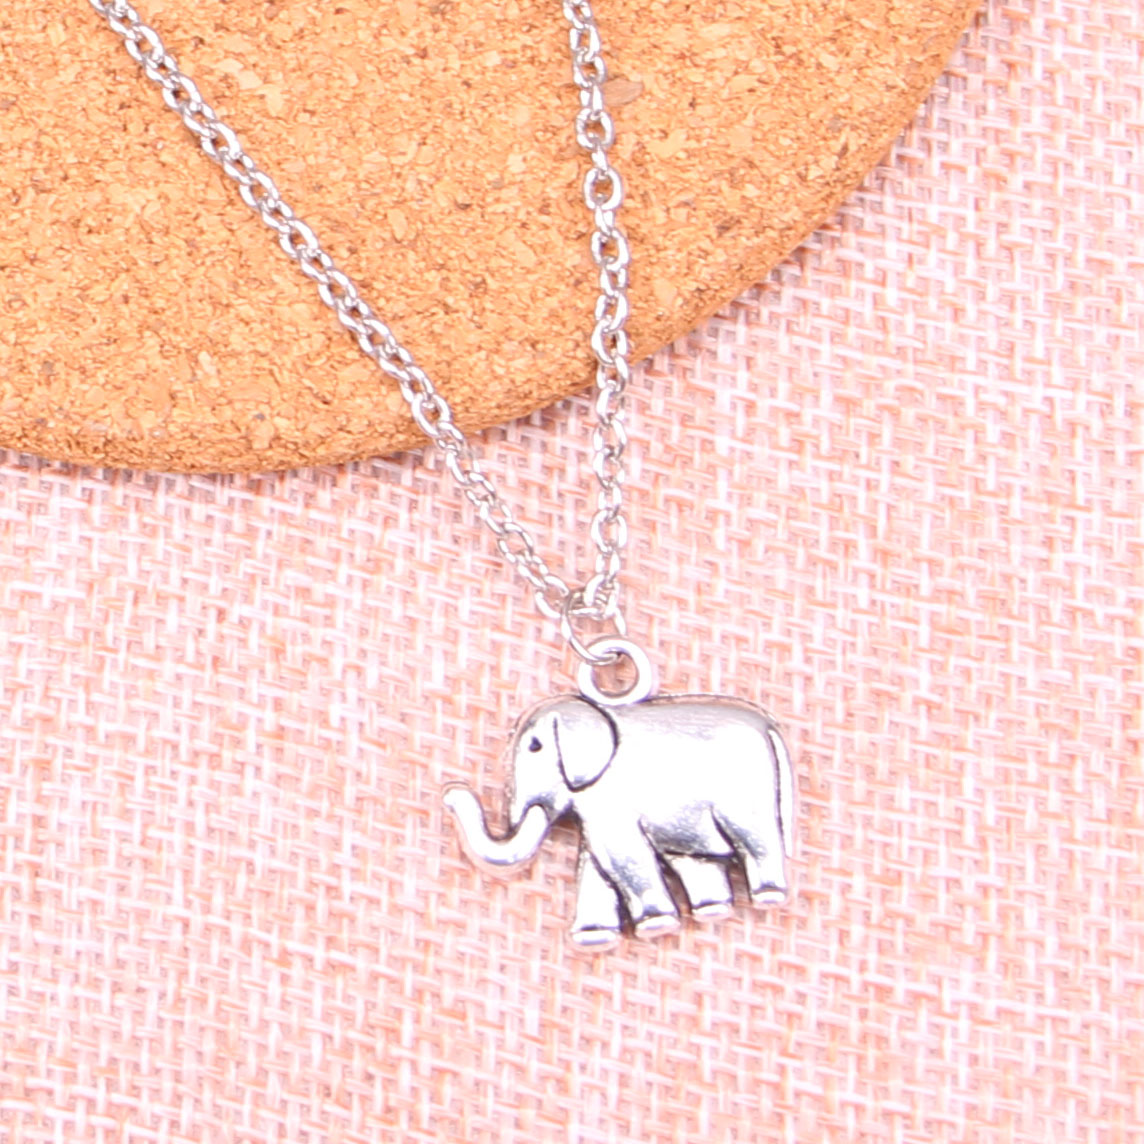 Fashion Antique Silver Color 21*18*5mm two sided elephant Pendant Necklace,Handmade Necklace Dropship Suppliers